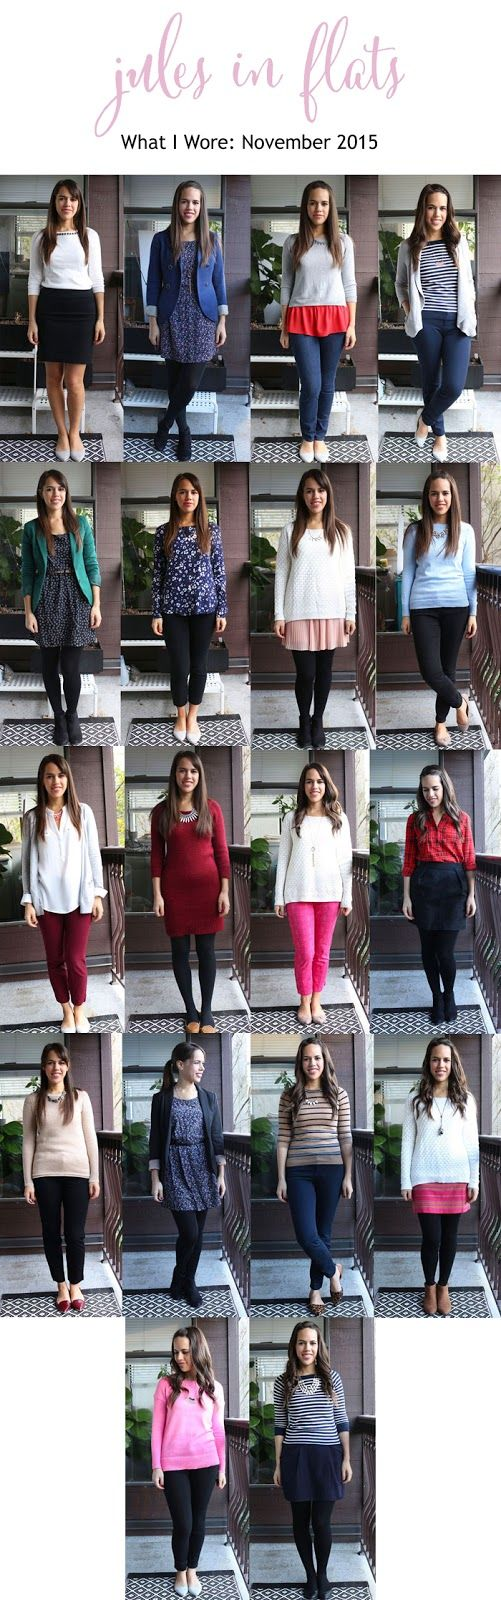 jules in flats: personal style blog - business casual workwear on a budget November 2015 Monthly Outfit Roundup